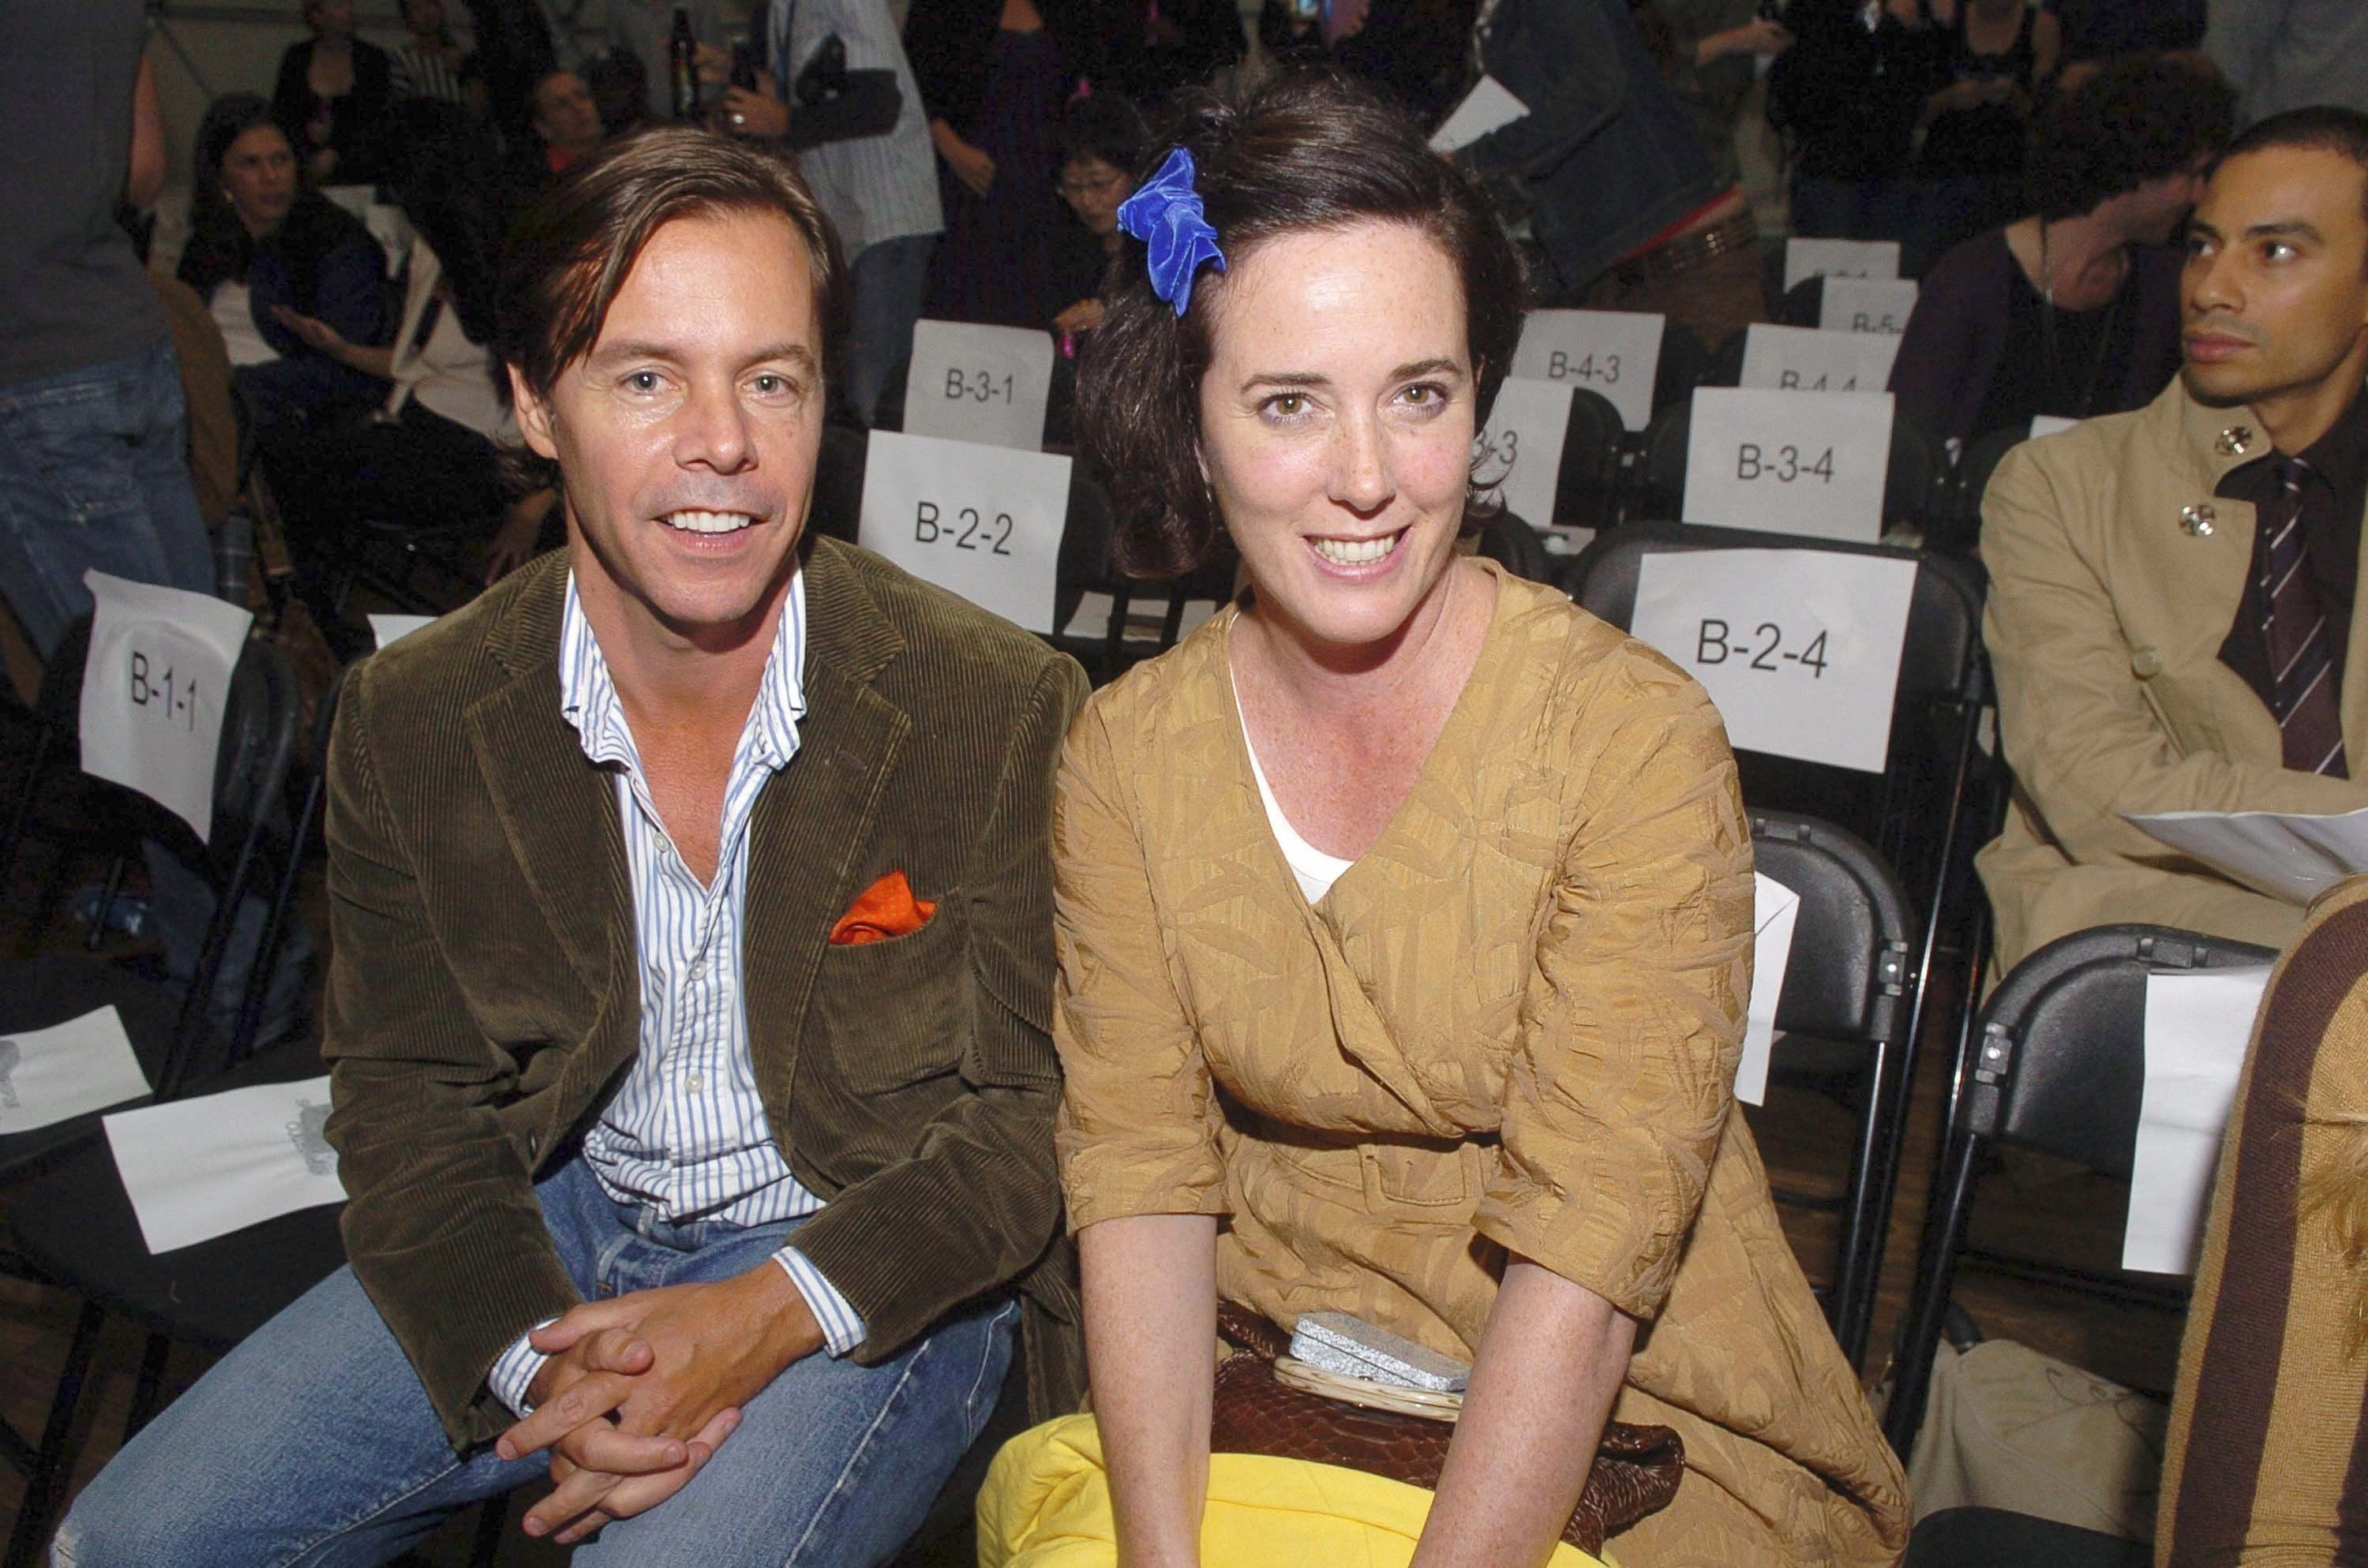 Kate Spade's husband acknowledges her fight with depression